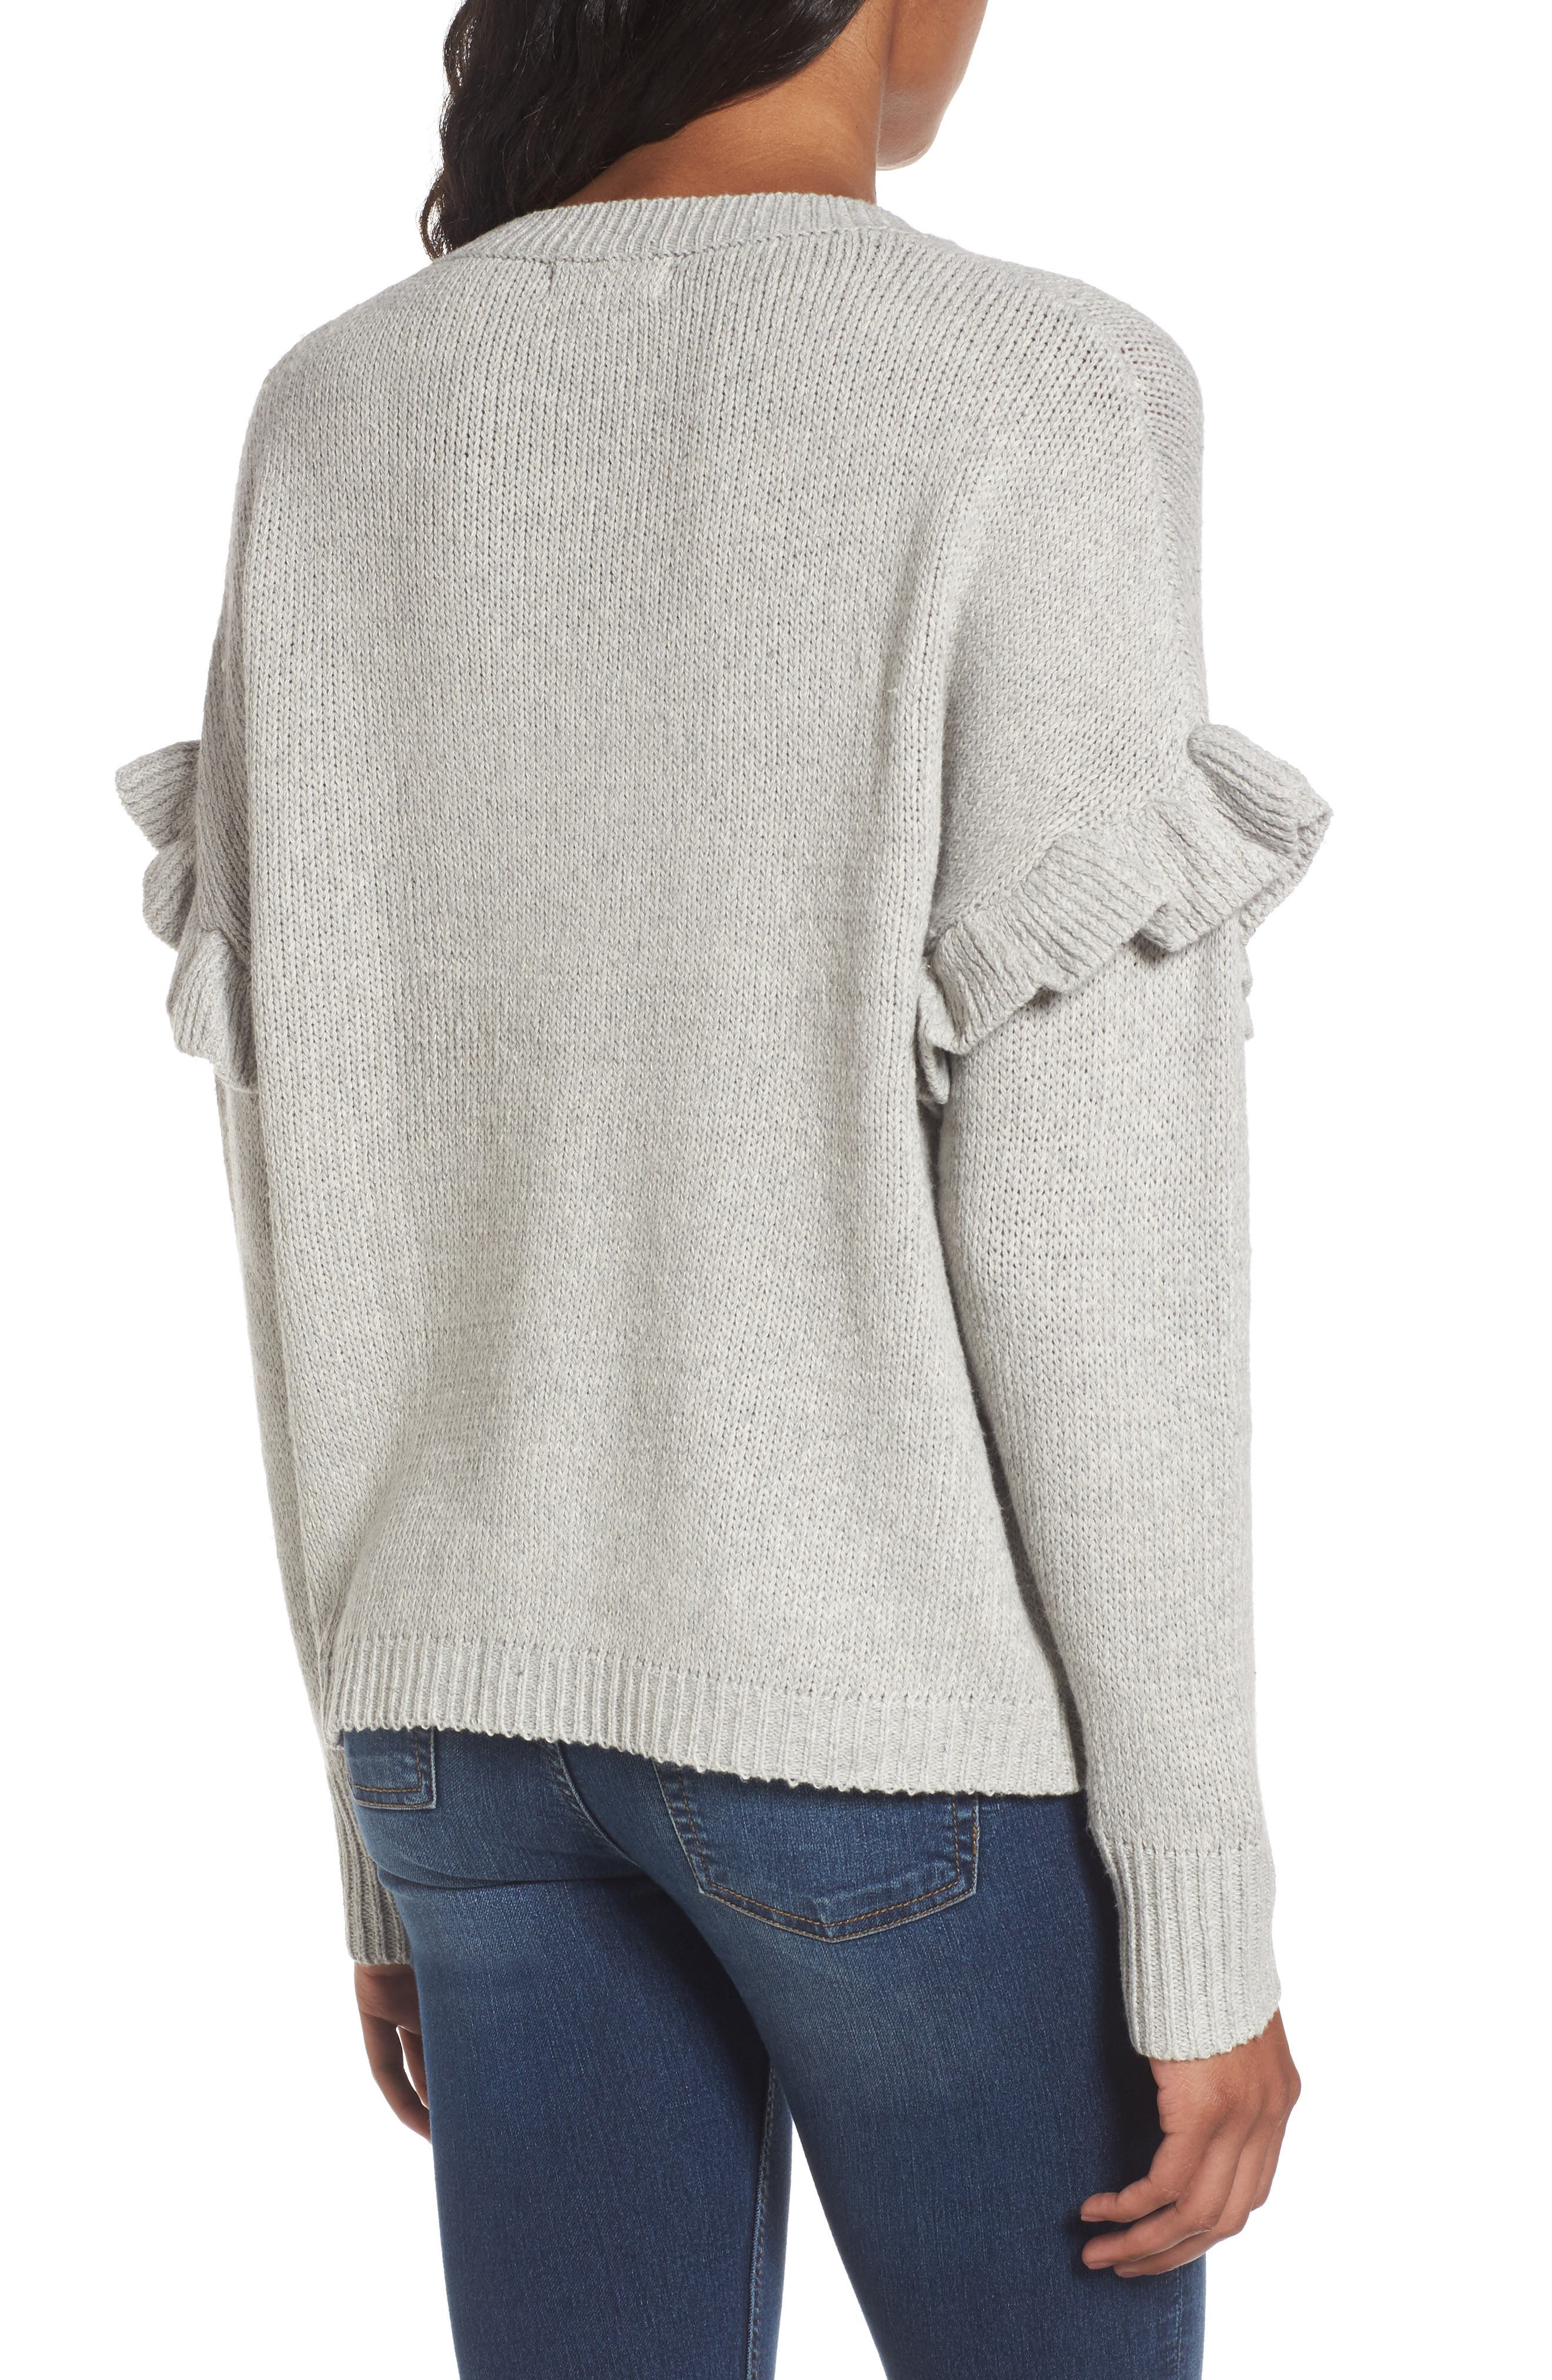 Ruffle Sleeve Embroidered Sweater,                             Alternate thumbnail 2, color,                             Grey